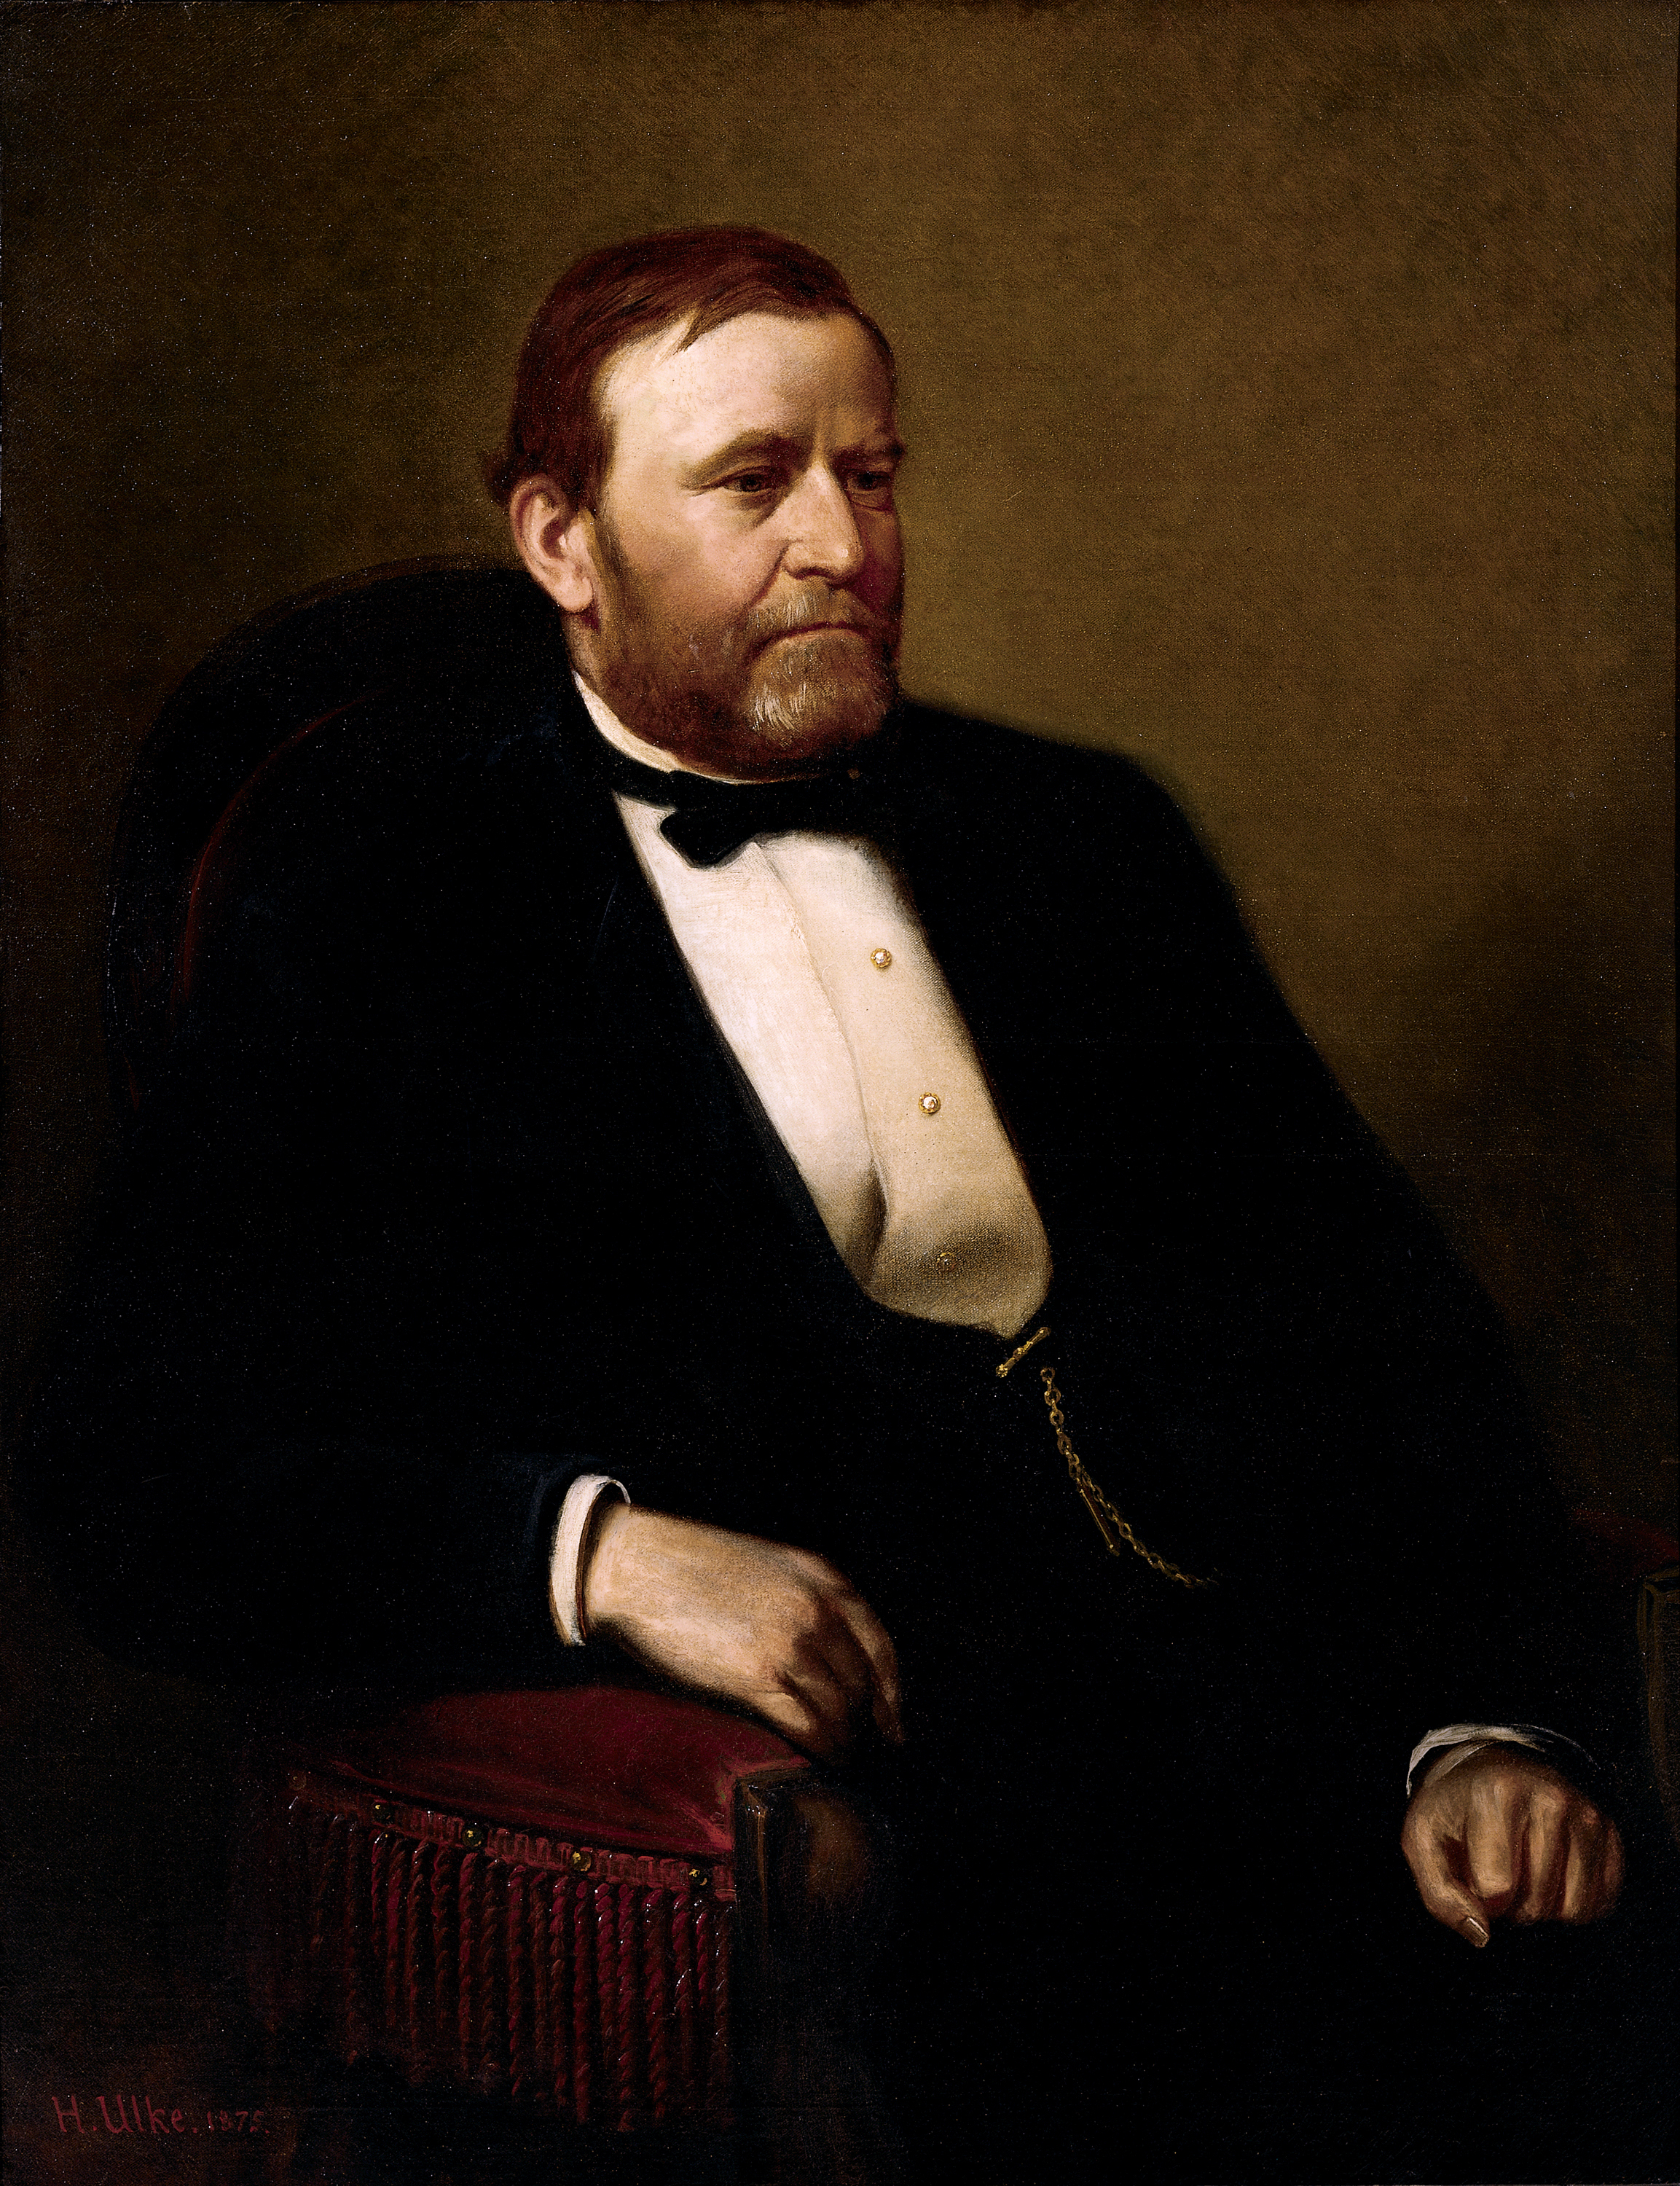 portrait gallery the periodic table of the presidents ulysses s grant official portrait the periodic table of the presidents